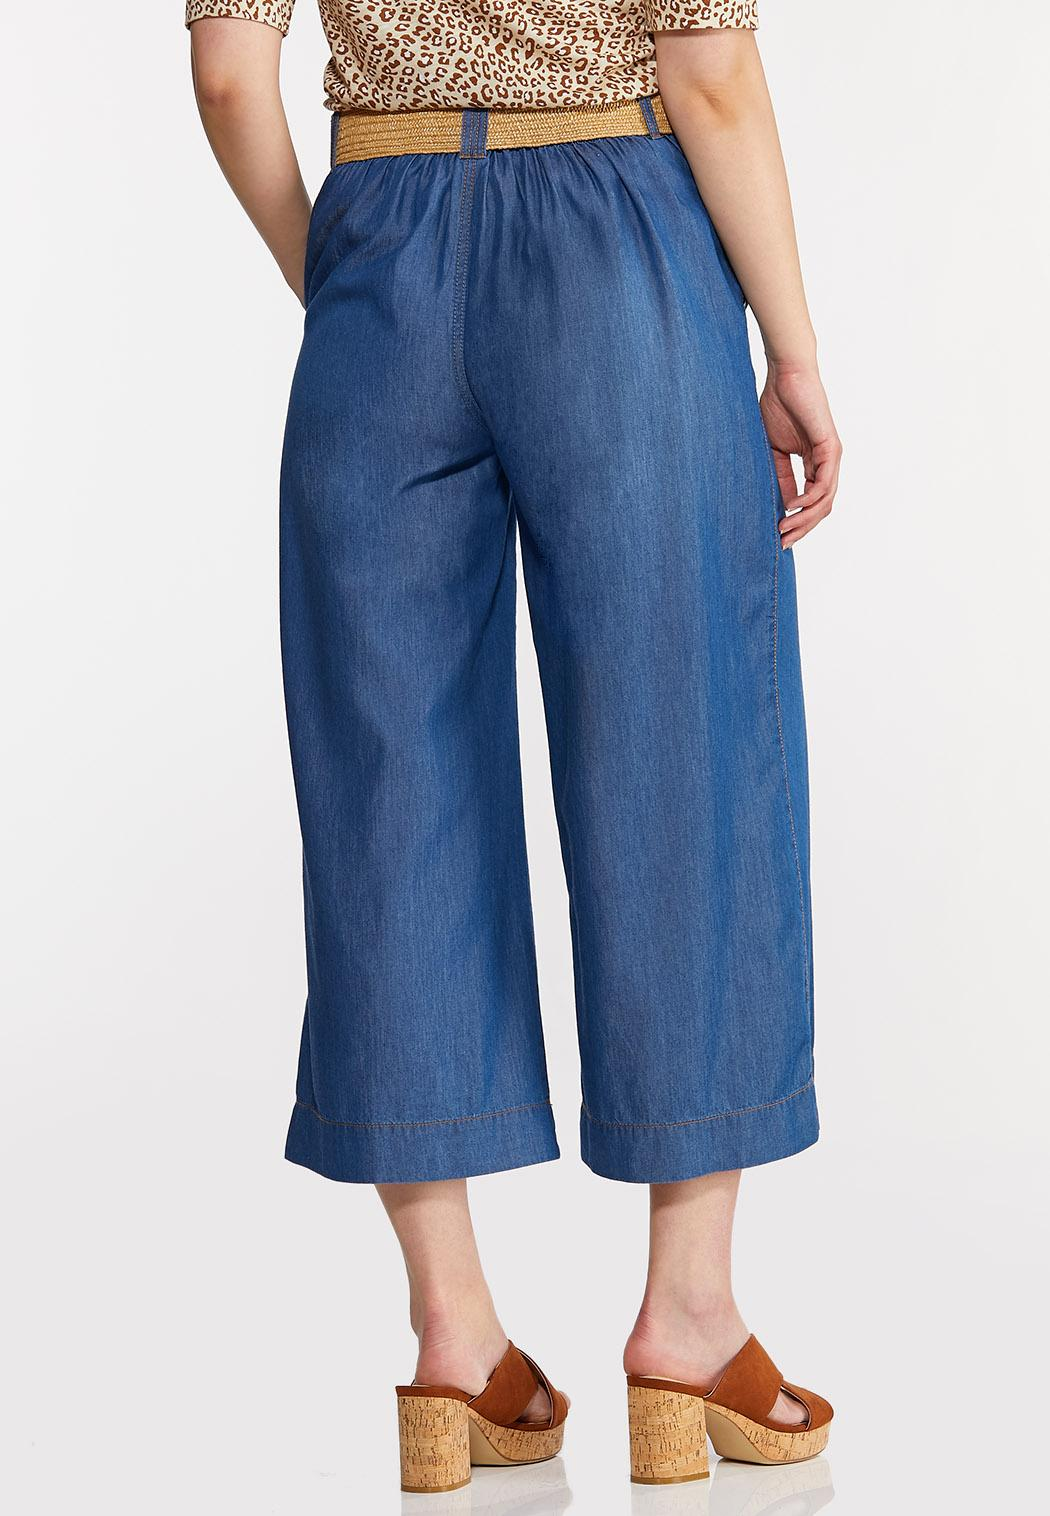 Belted Chambray Cropped Pants (Item #44260779)